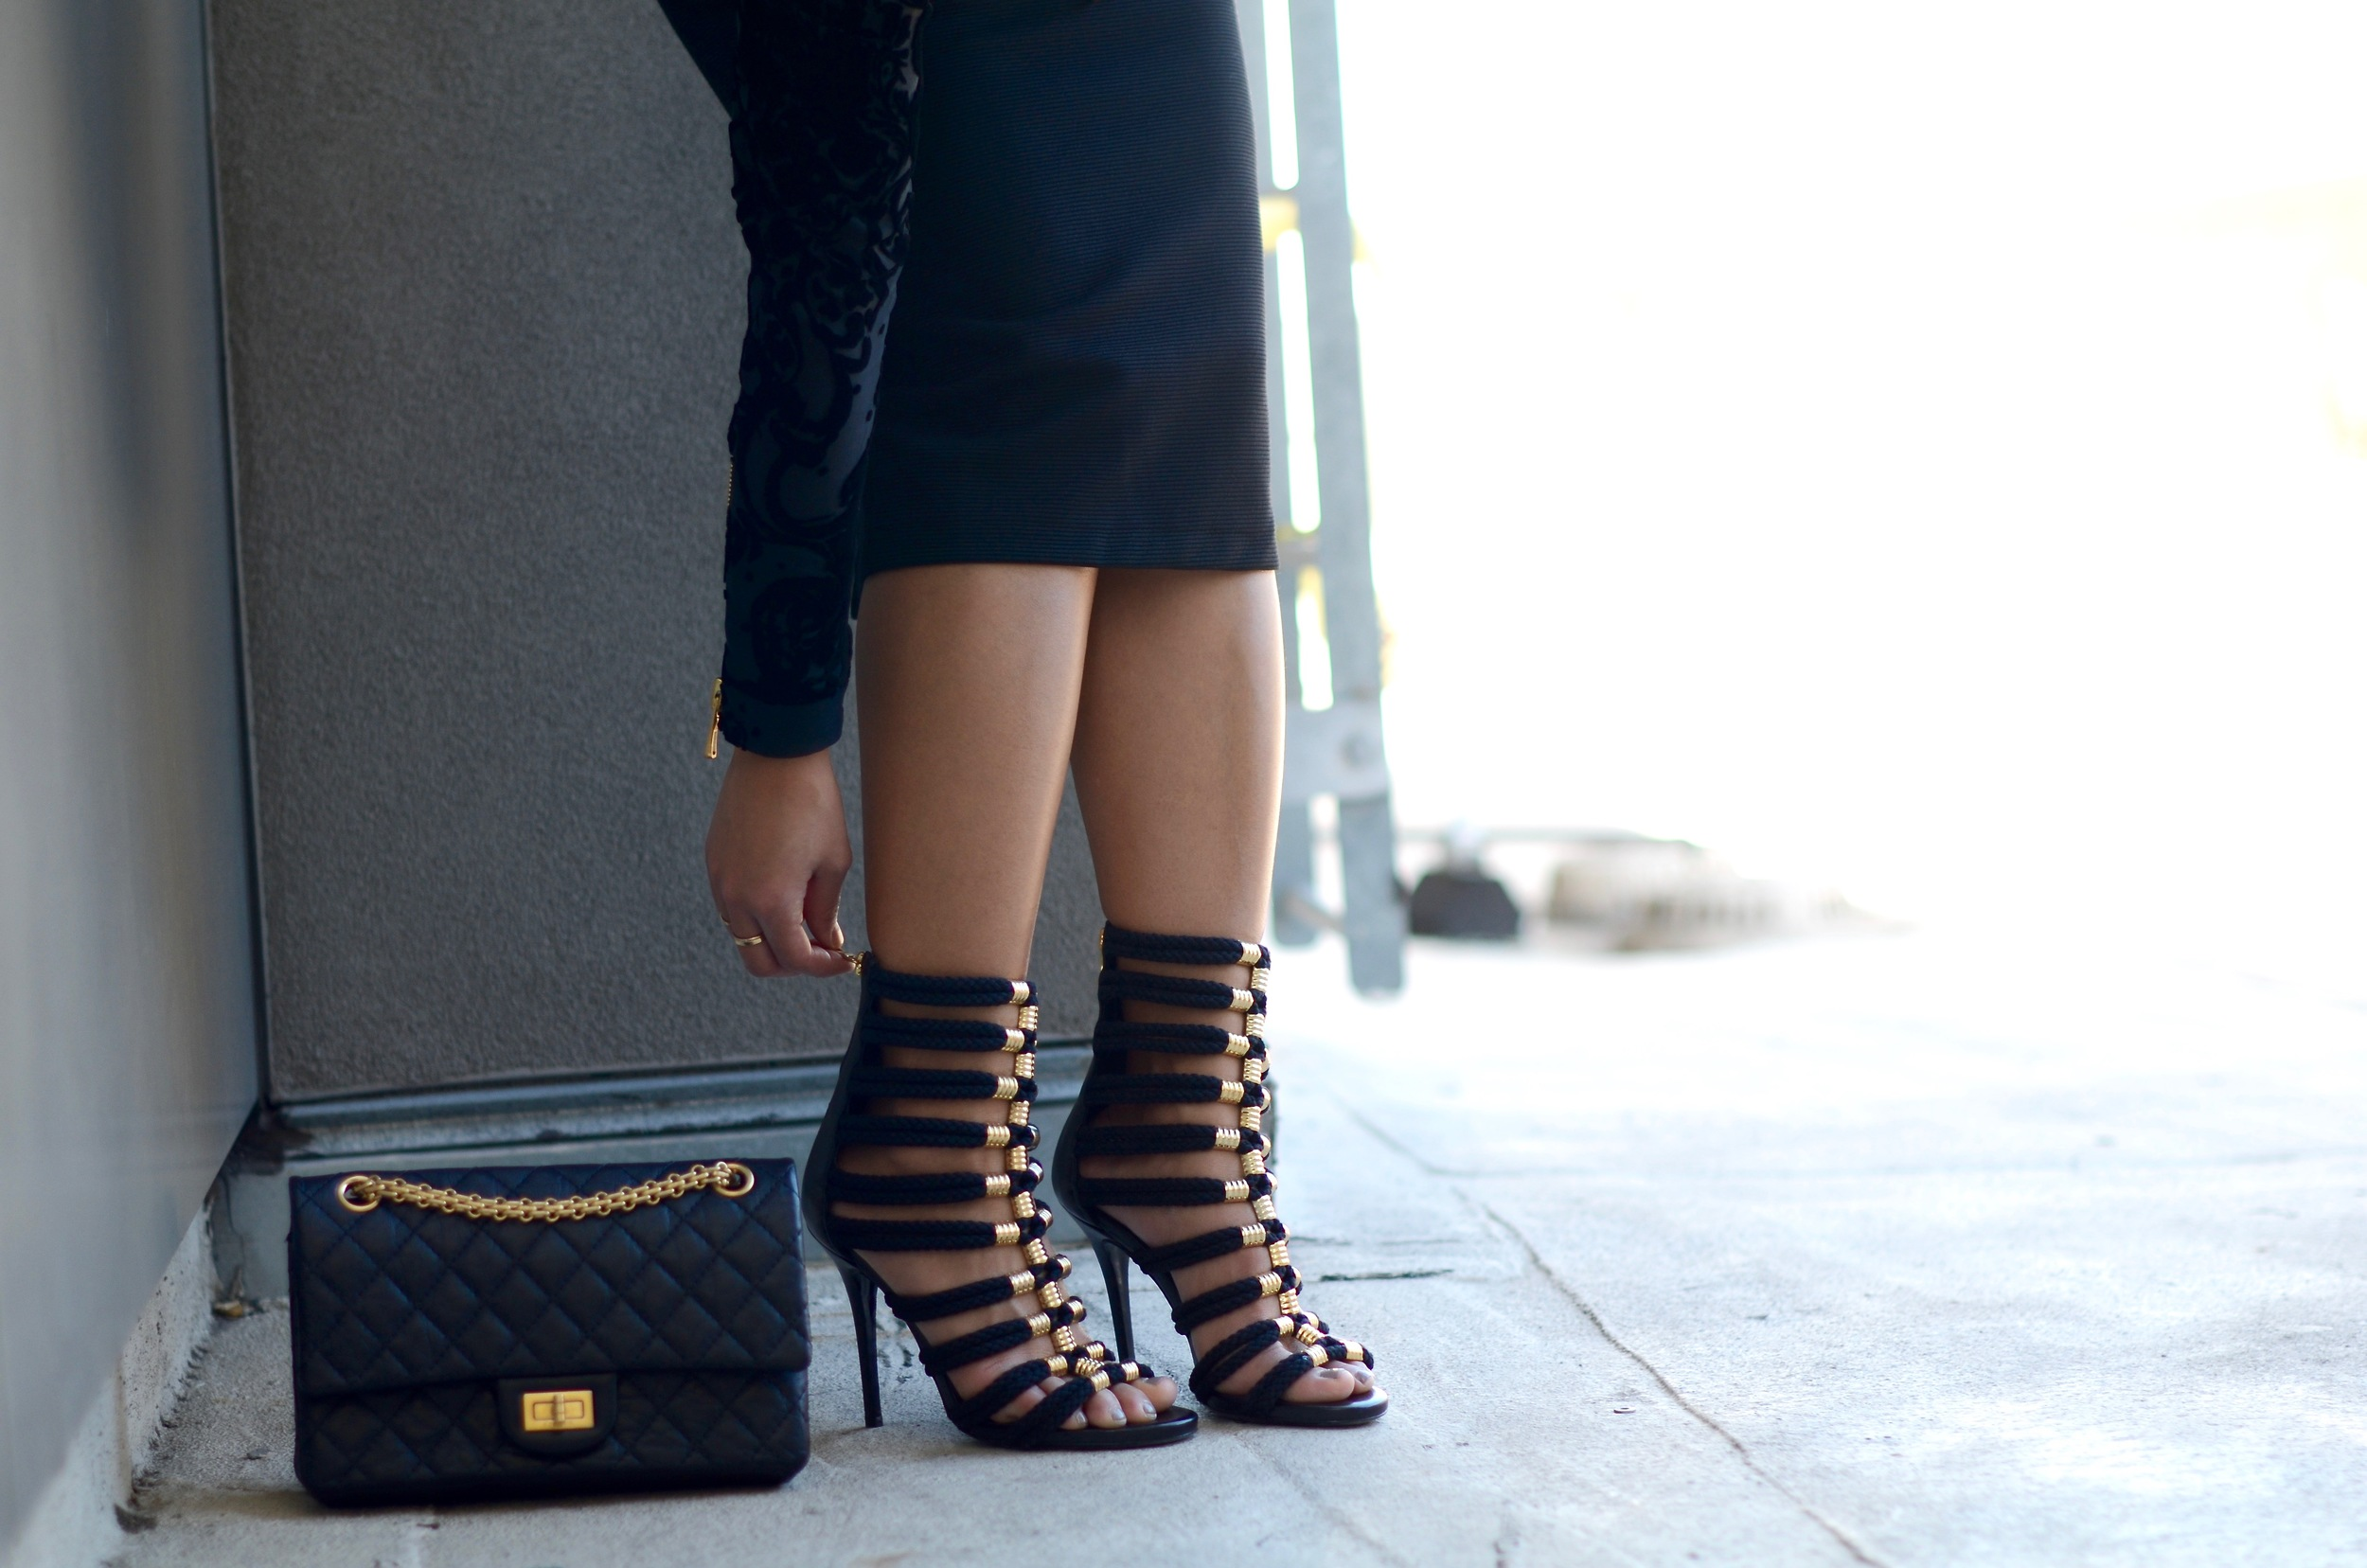 Just Goh With It-Outfit-Black-HM-Balmain-velvet-Turtleneck-gold-strappy-sandals-skirt-chanel-9.jpg